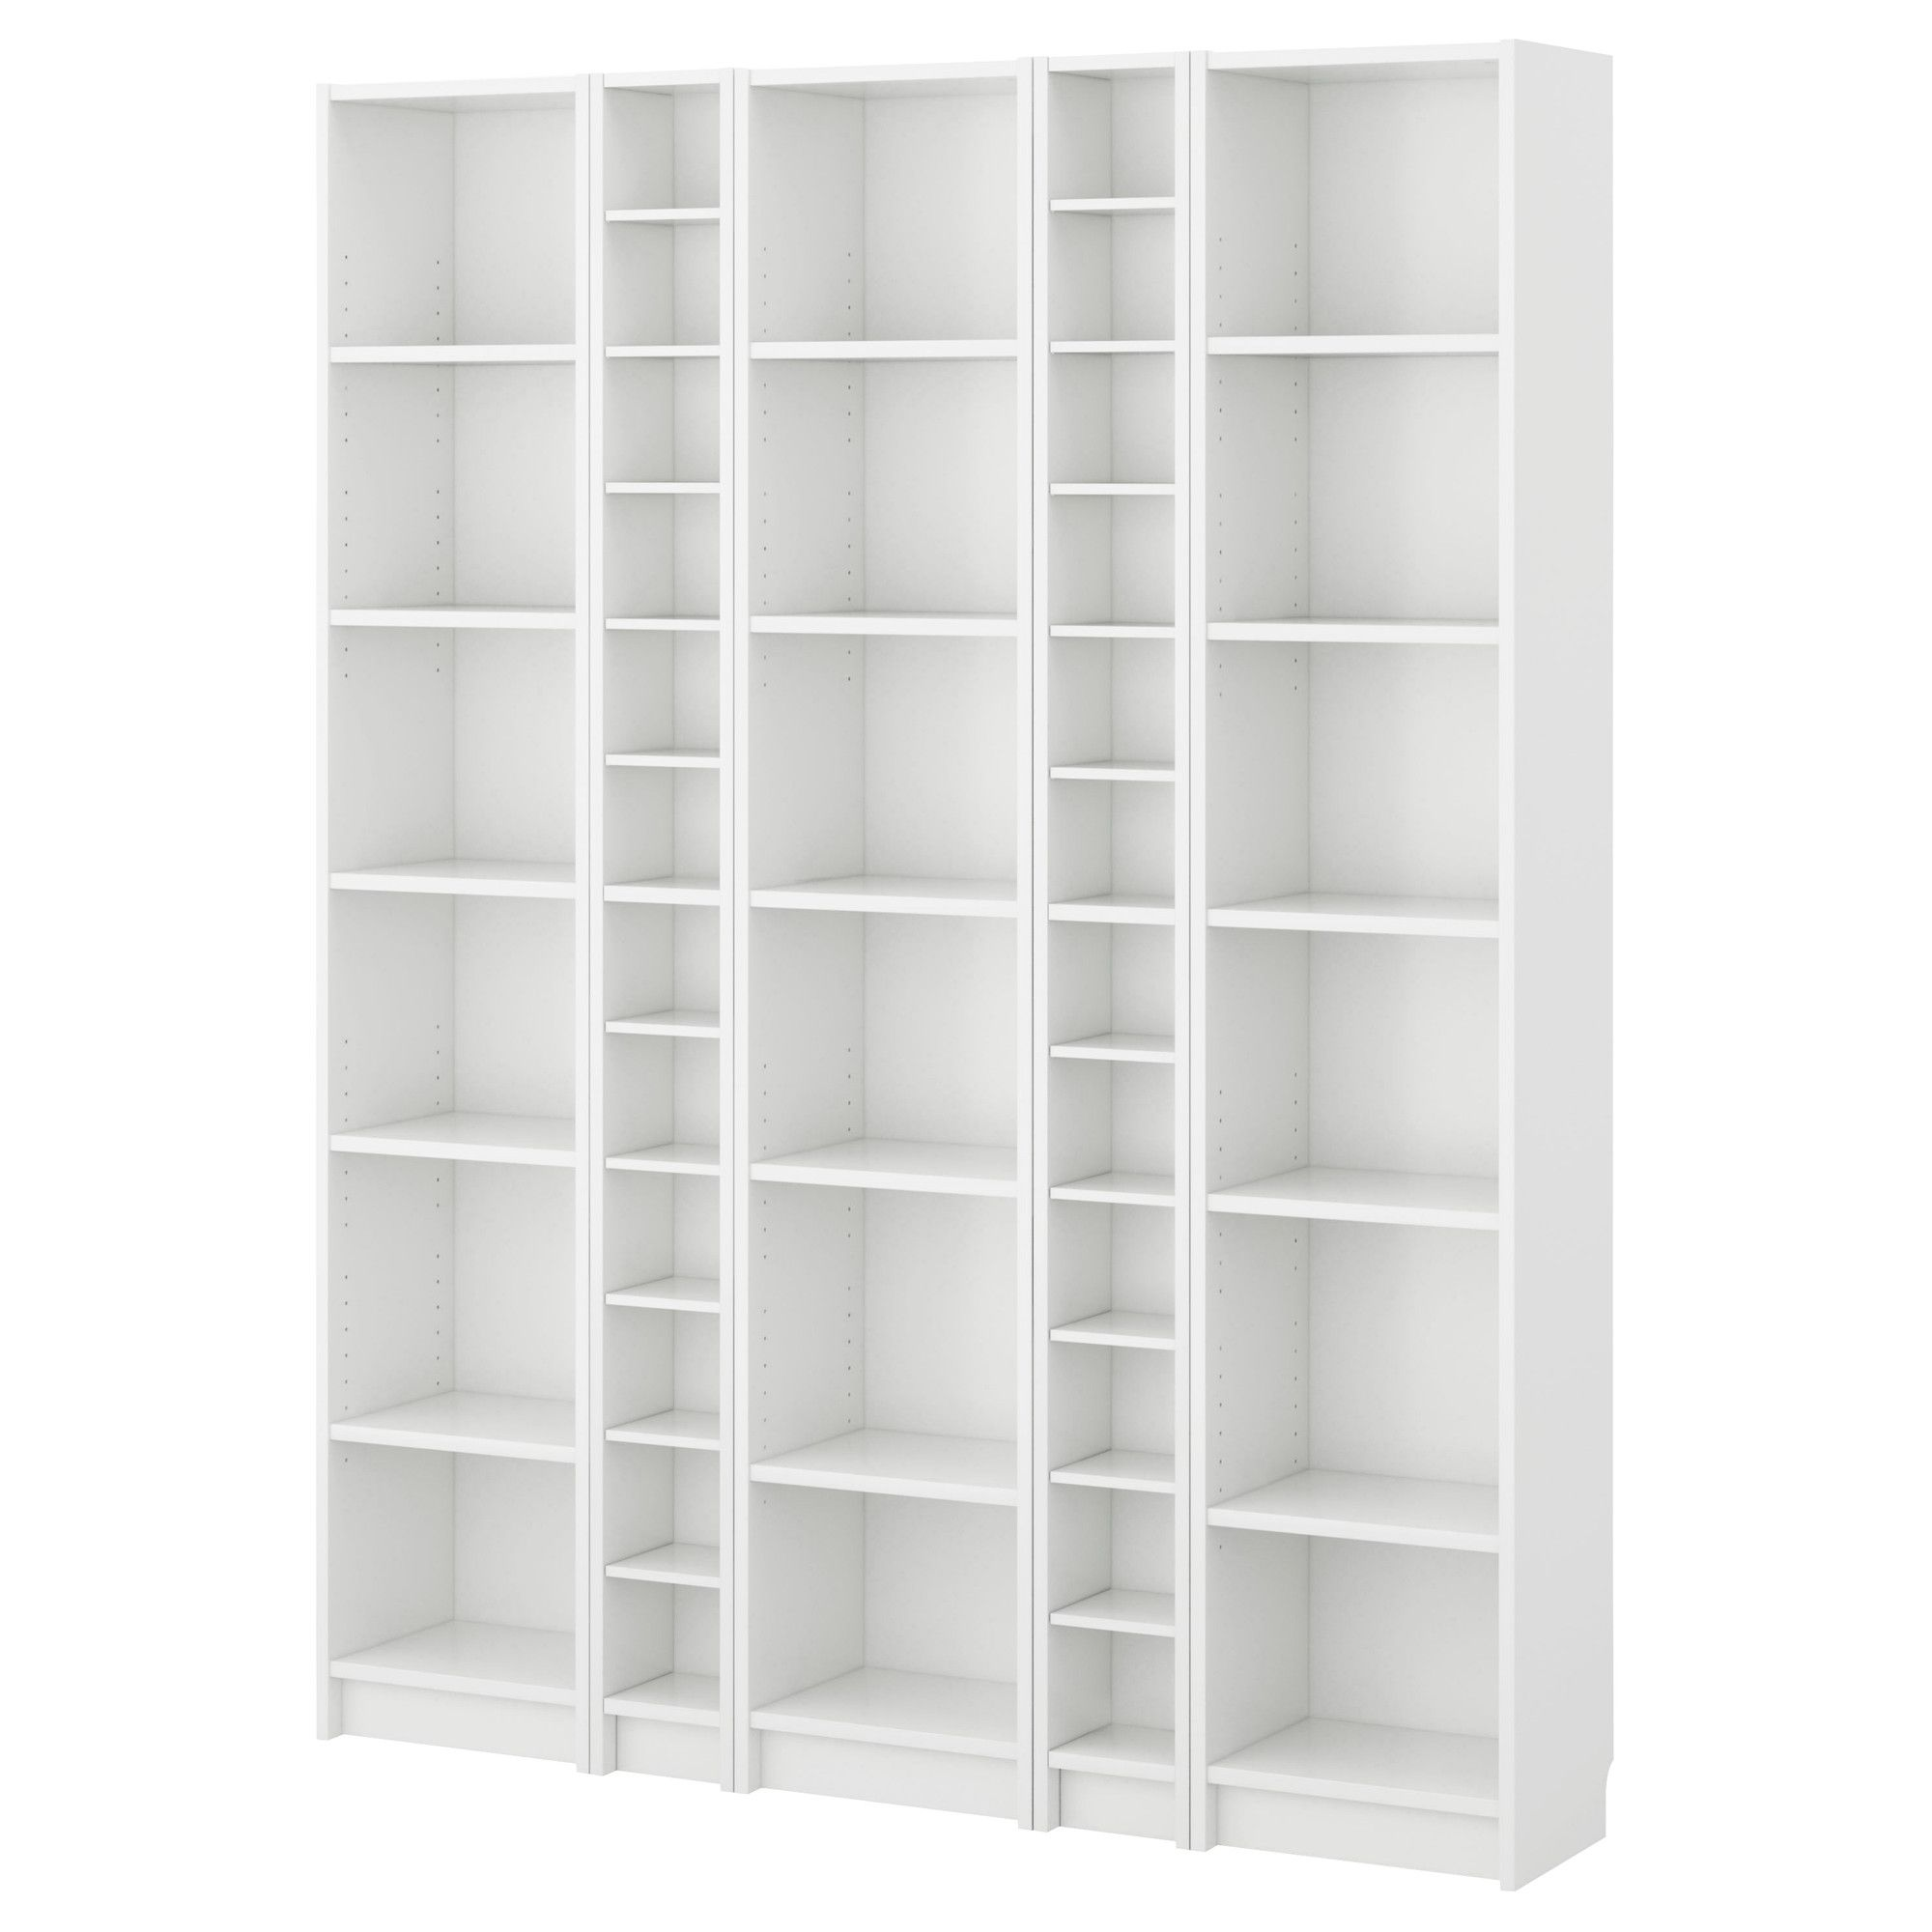 Finest Billybenno Bookcase Shelves Modern Bookcases Cabinets And Computer Armoires By Ikea With